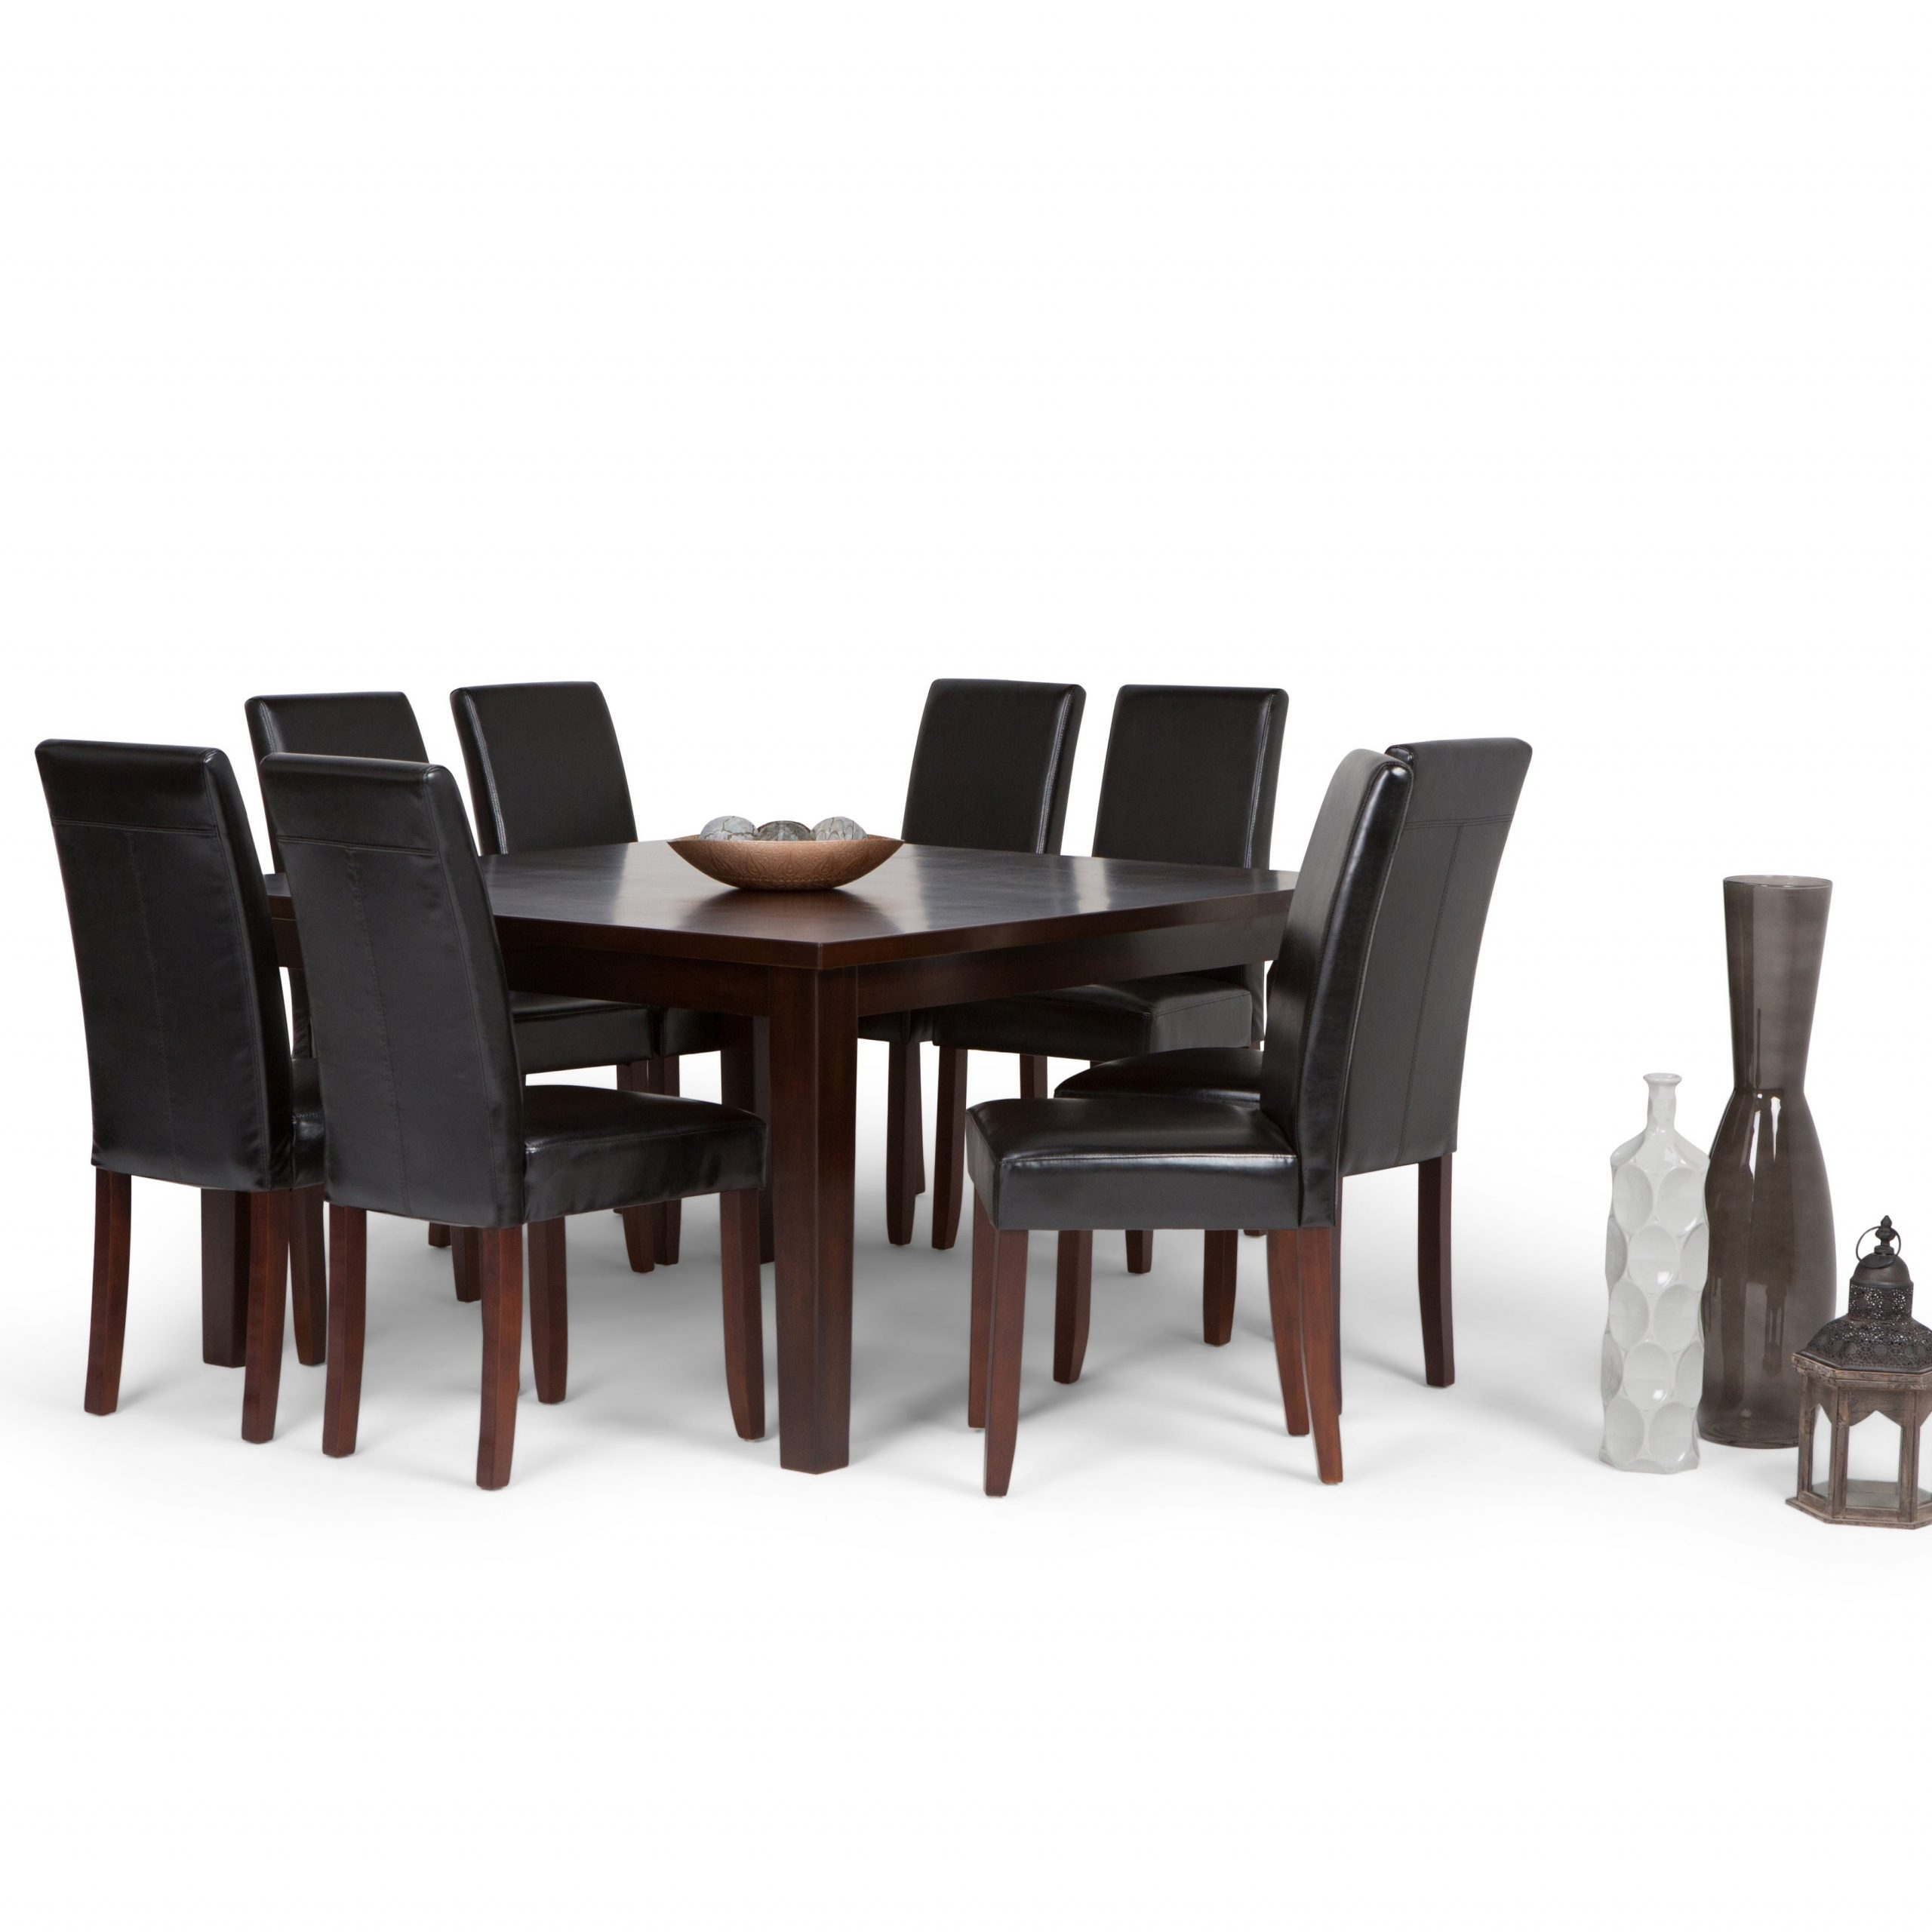 Wyndenhall Normandy Contemporary 9 Pc Dining Set With 8 Upholstered Parson Chairs And 54 Inch Wide Table In Most Current Normandy Extending Dining Tables (View 14 of 25)